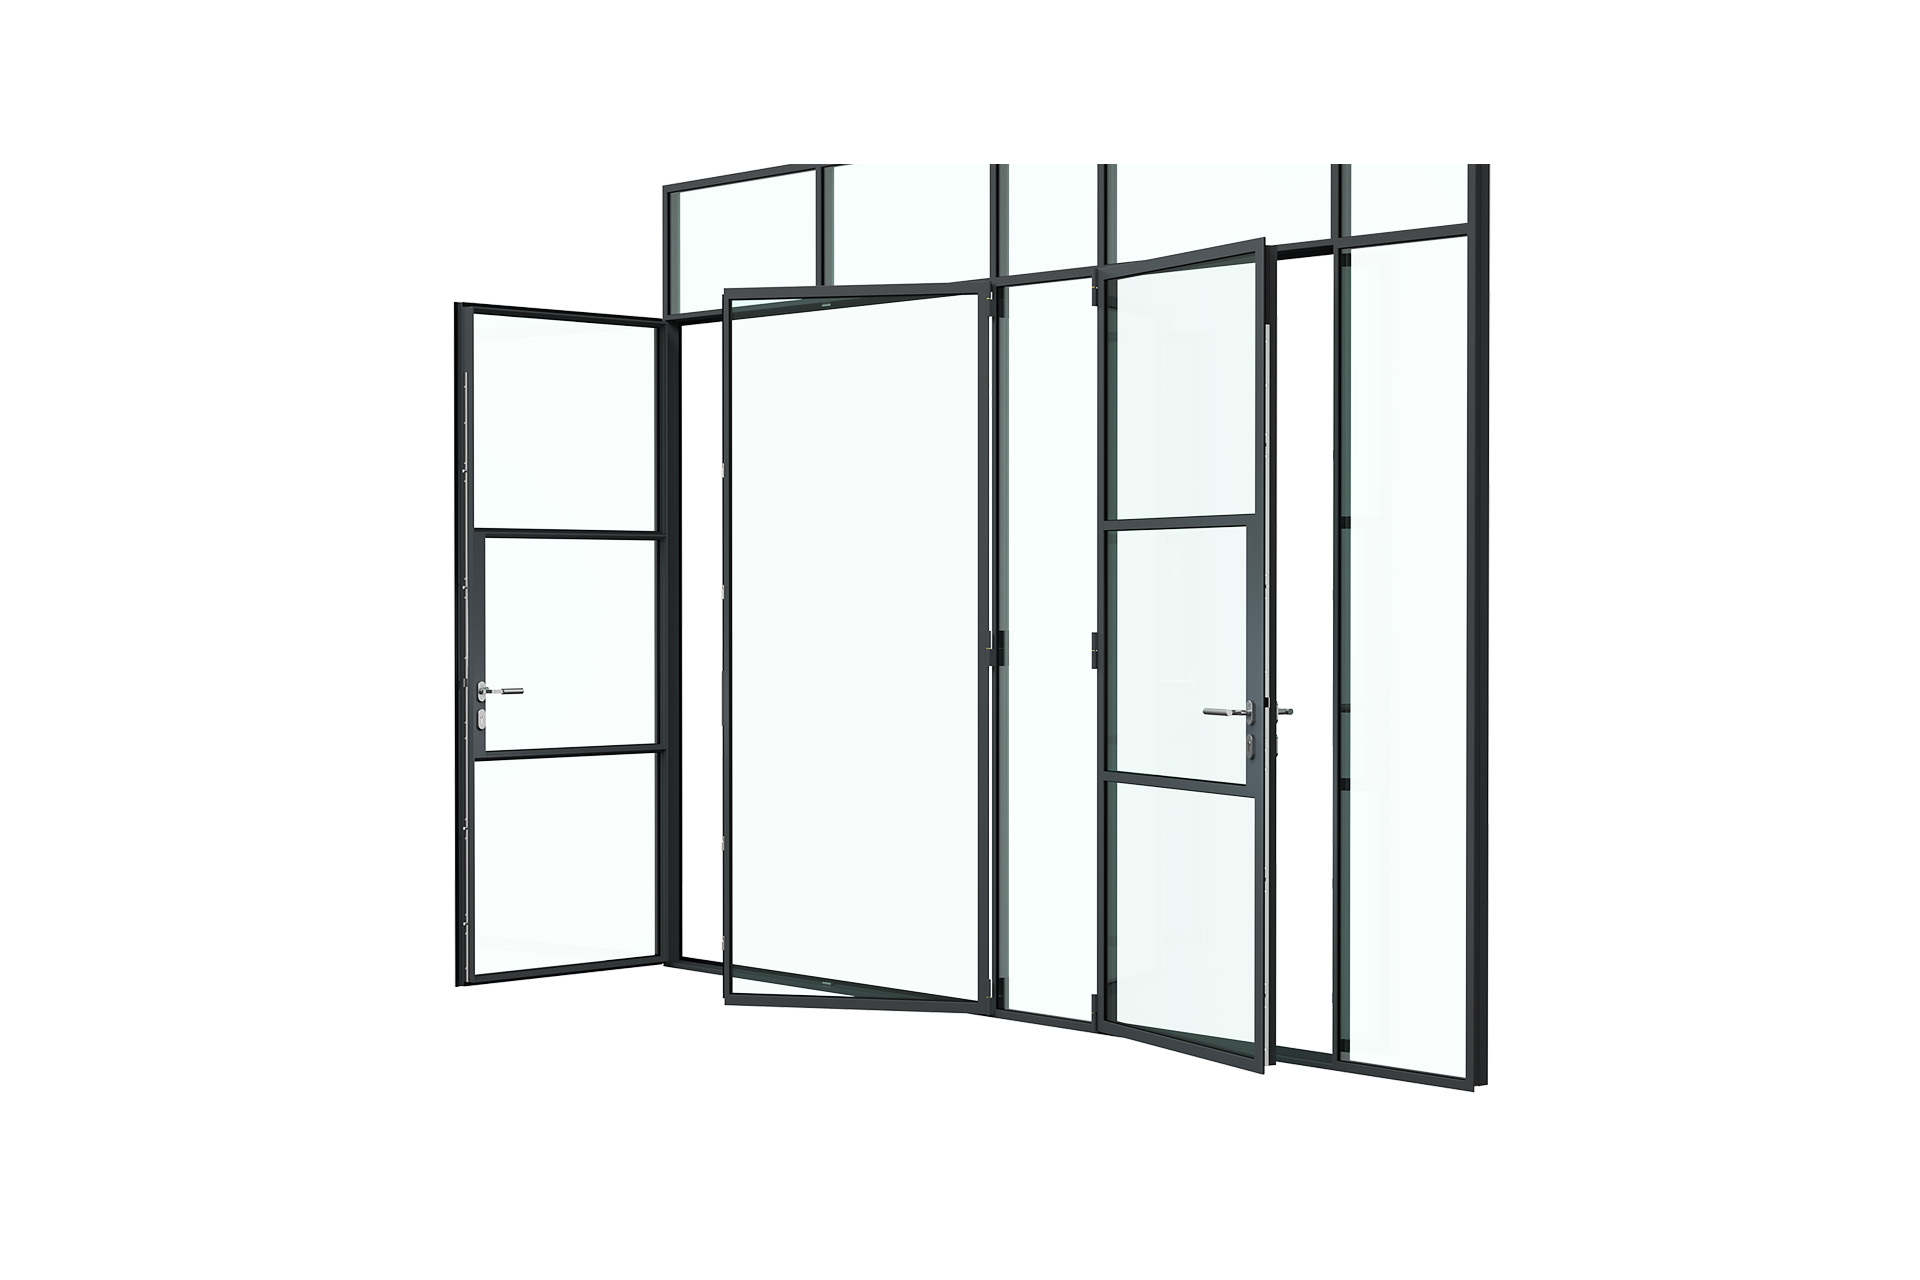 3d rendering side view of MHB steel partial lock mullion doors